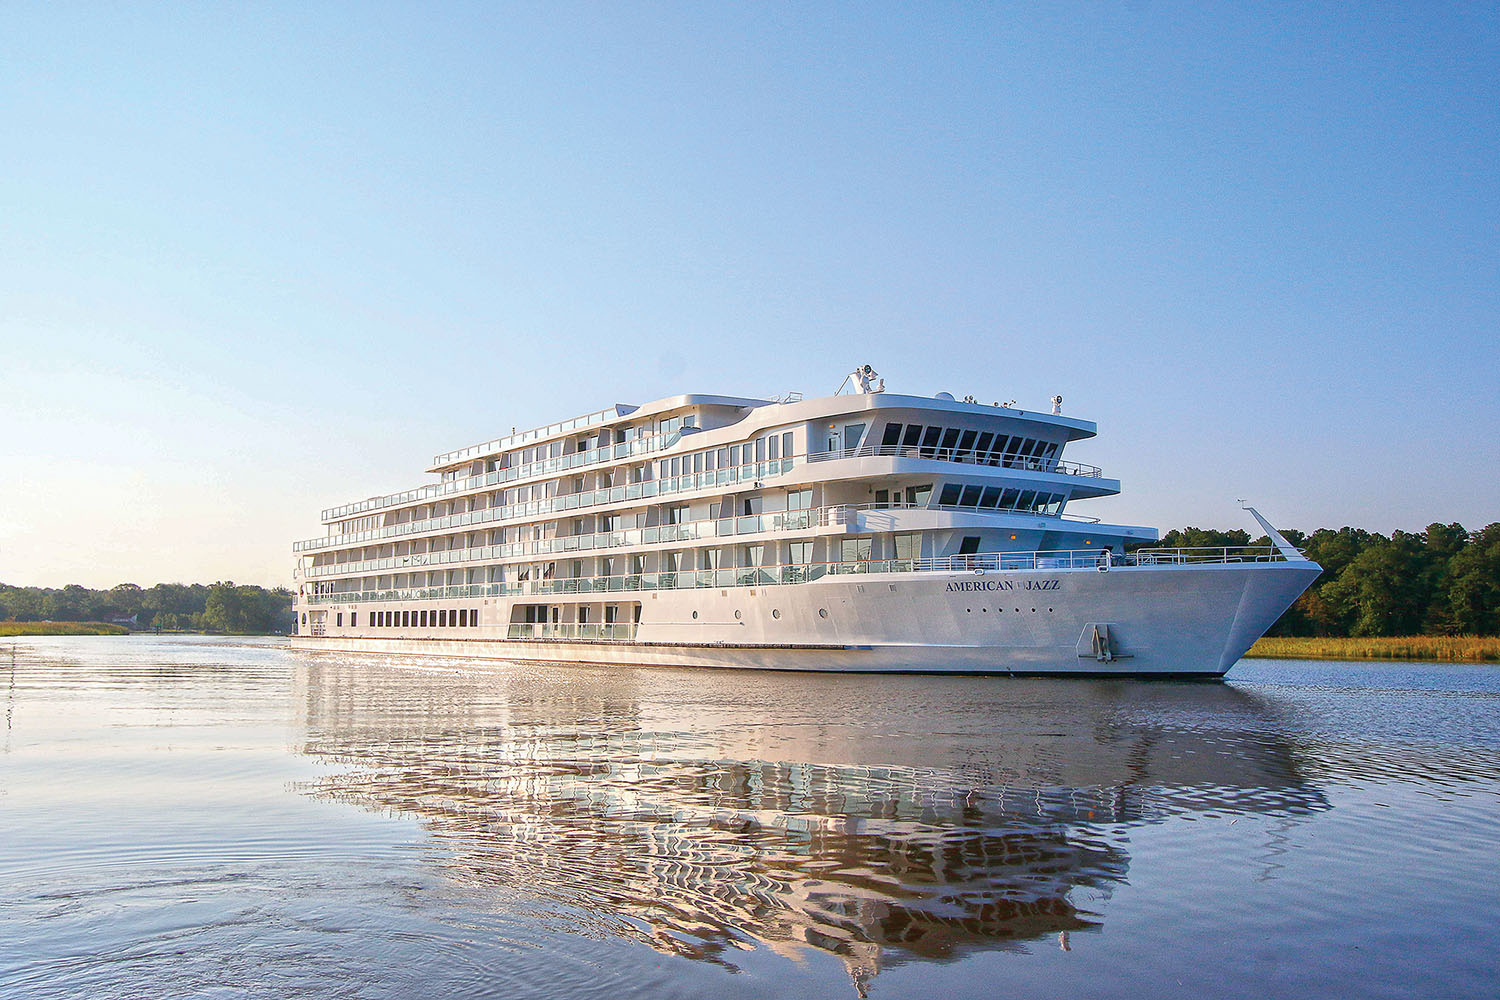 Built by Chesapeake Shipbuilding, the American Jazz will operate on the Mississippi River.